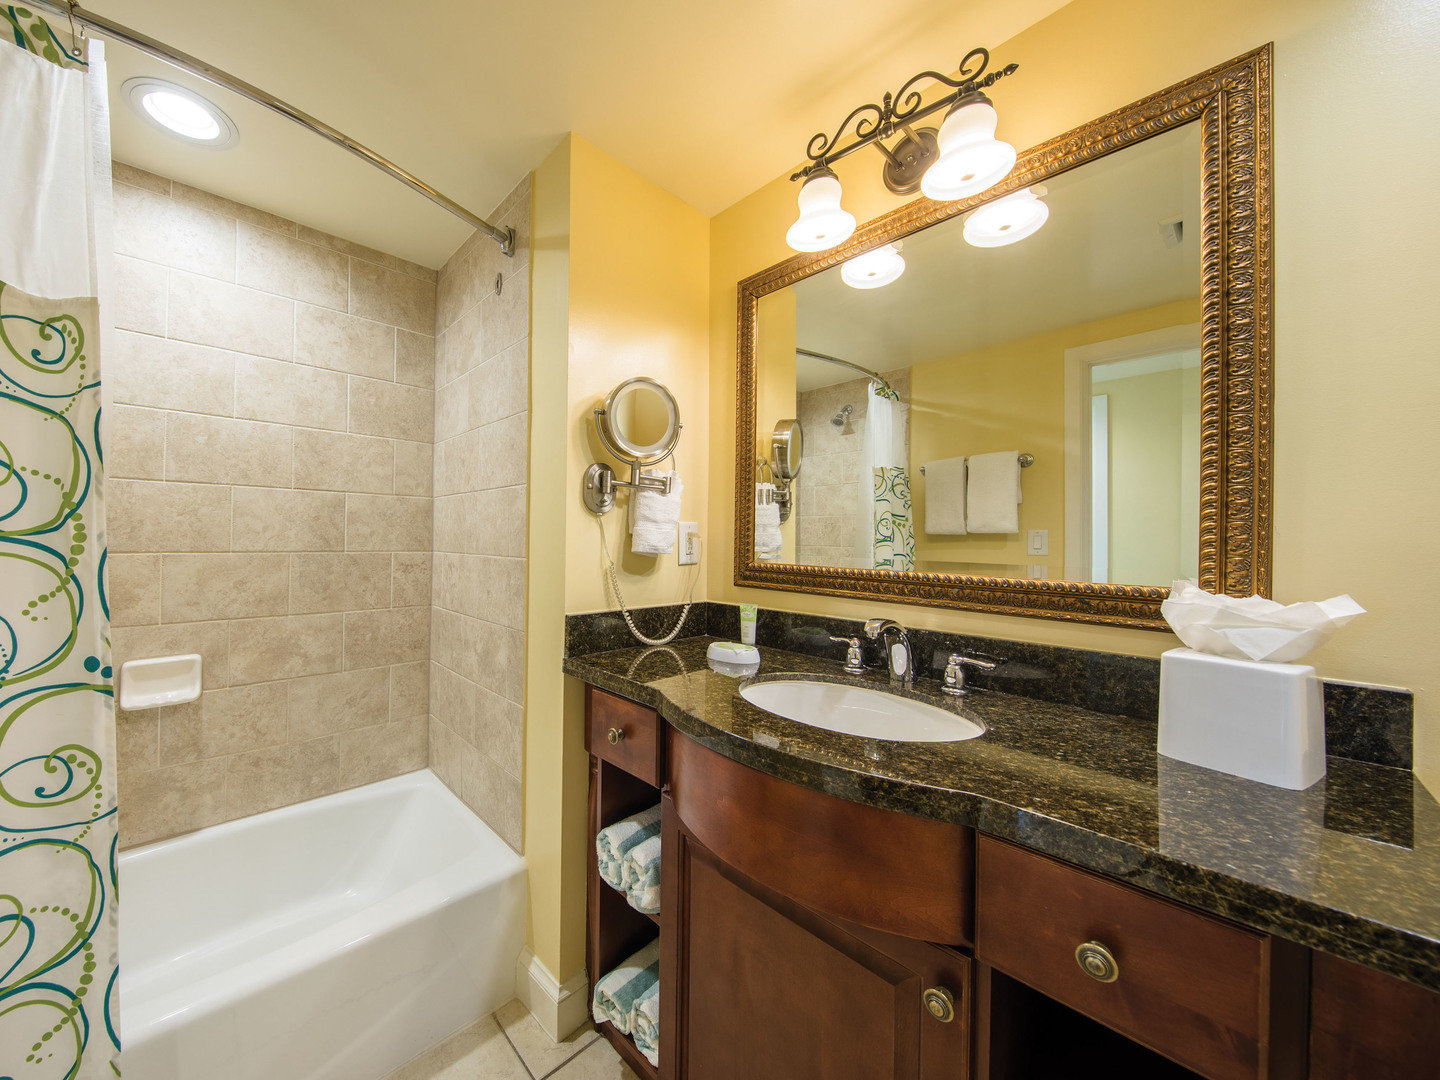 Marriott's Frenchman's Cove Villa Guest Bathroom. Marriott's Frenchman's Cove is located in St. Thomas, US Virgin Islands United States.